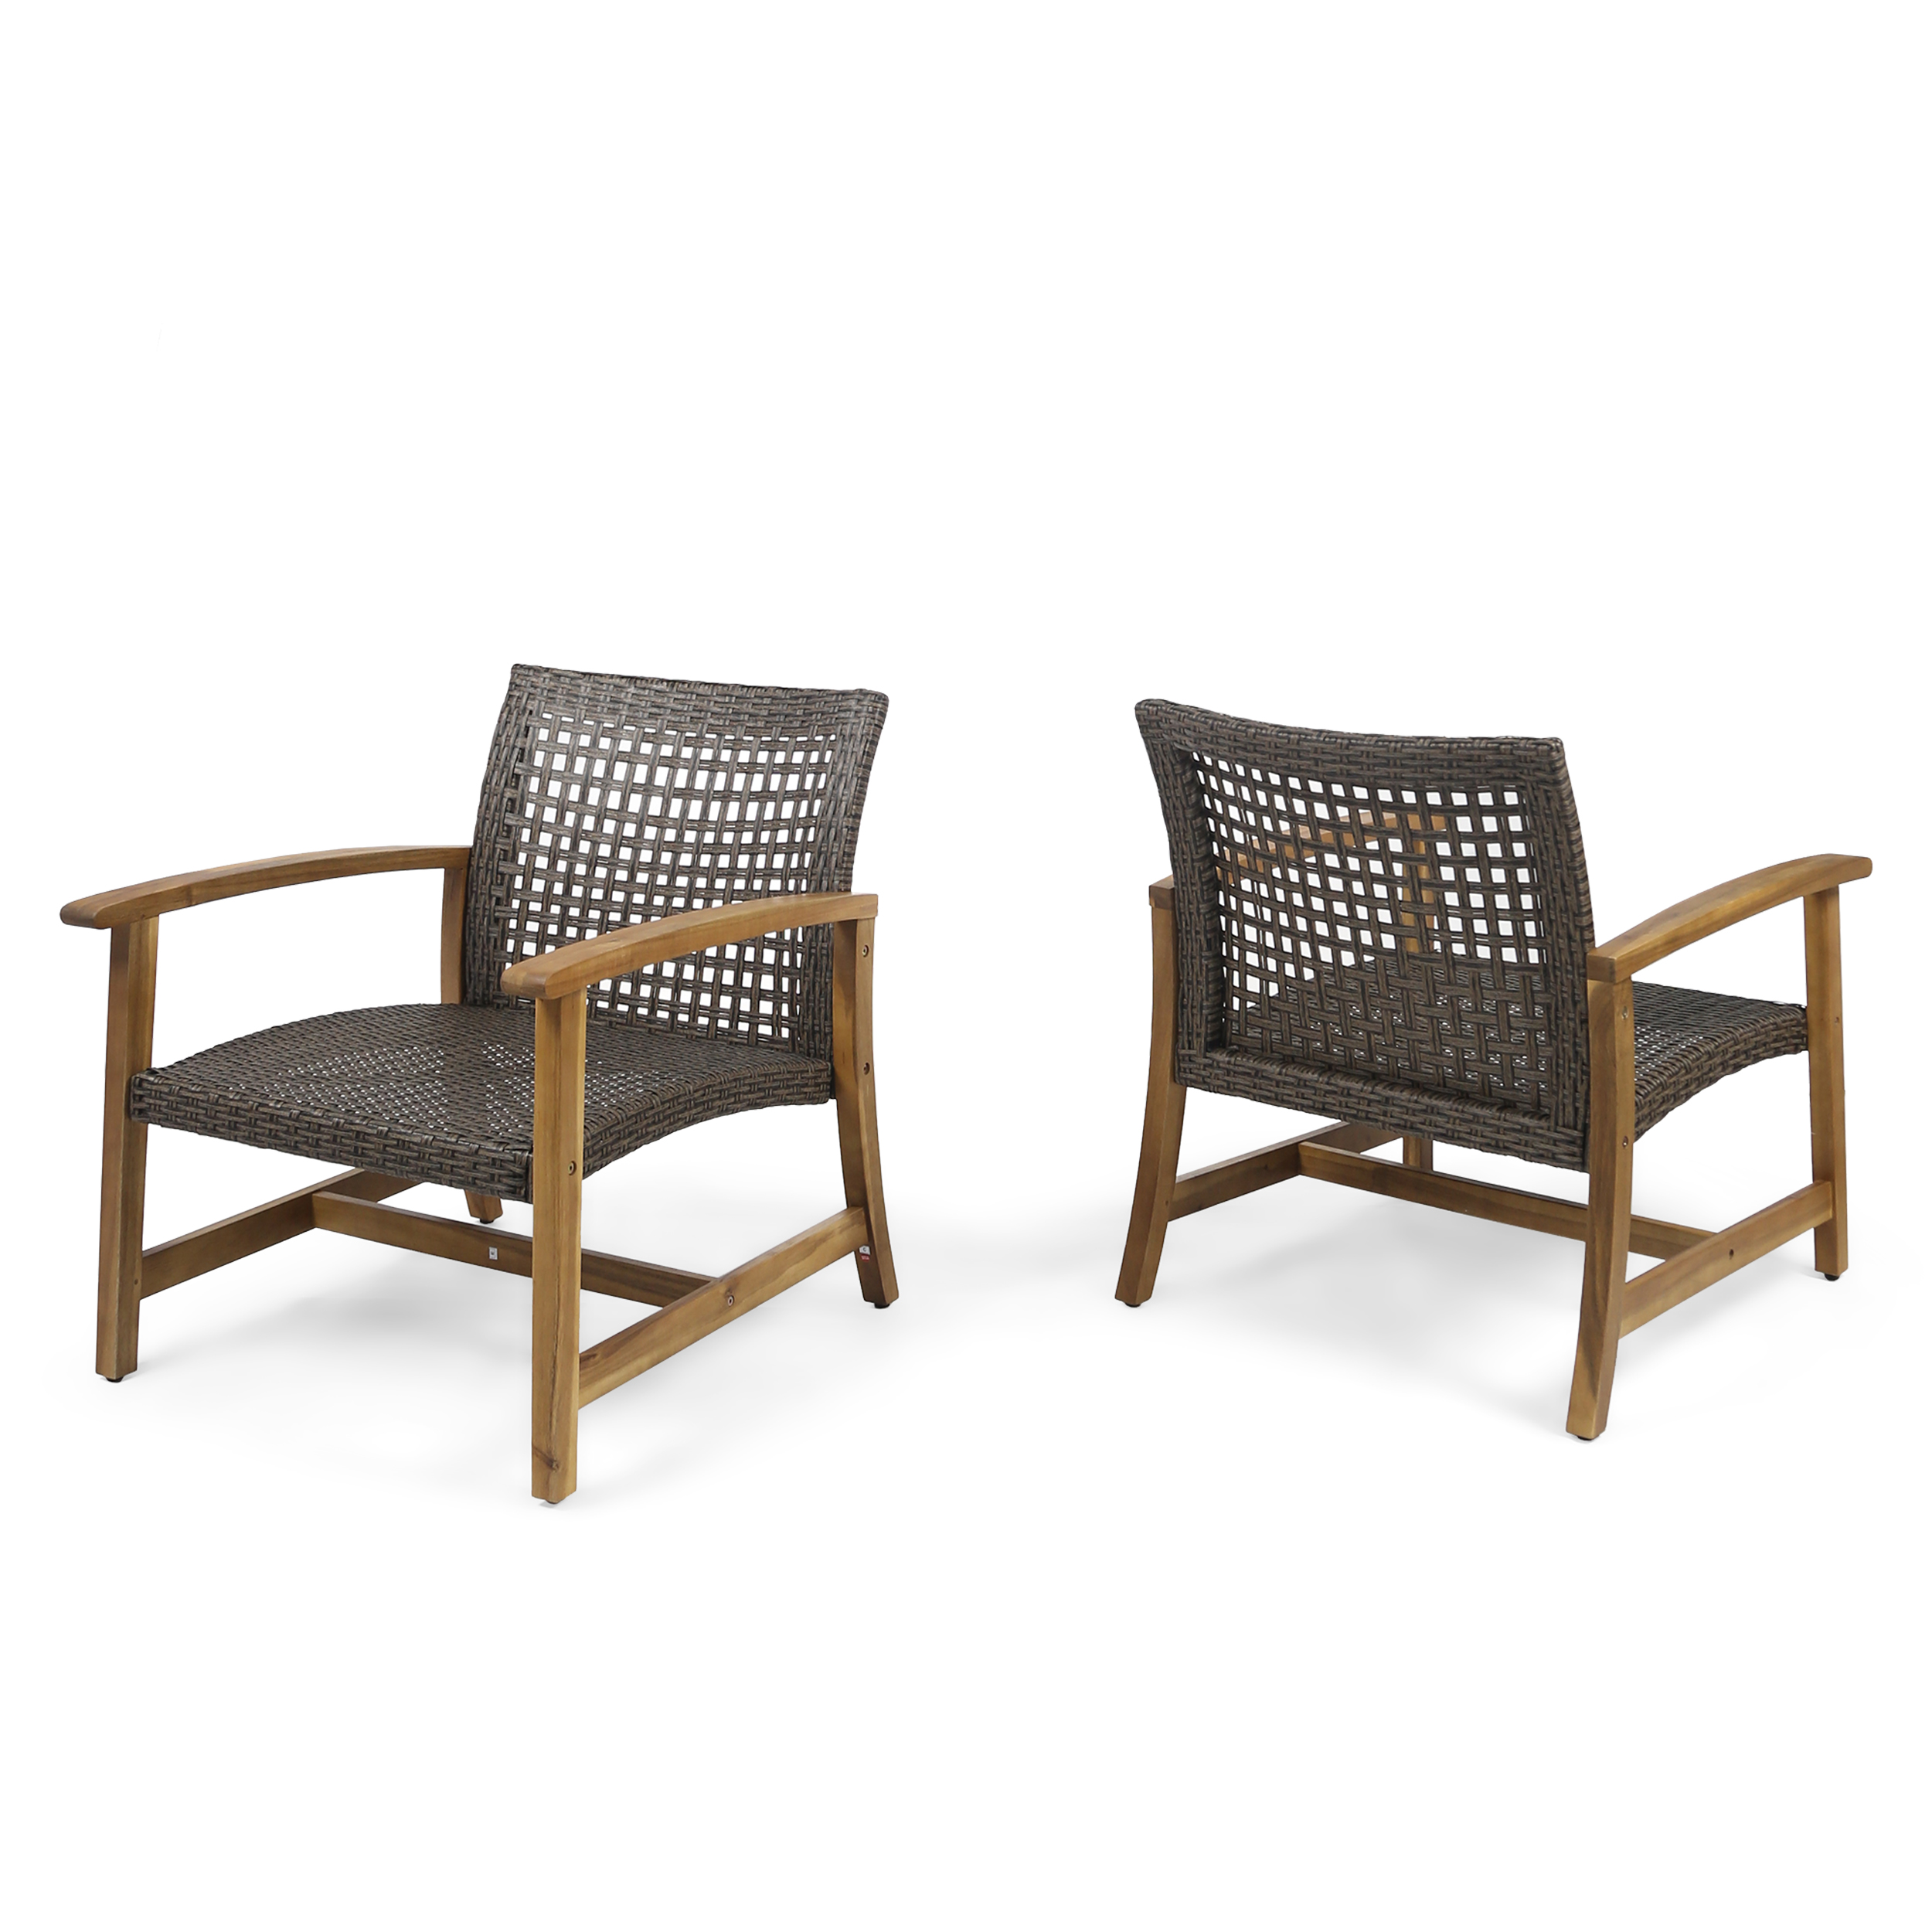 Viola Outdoor Wood and Wicker Club Chairs, Set of 2, Teak Finish and Mixed Mocha